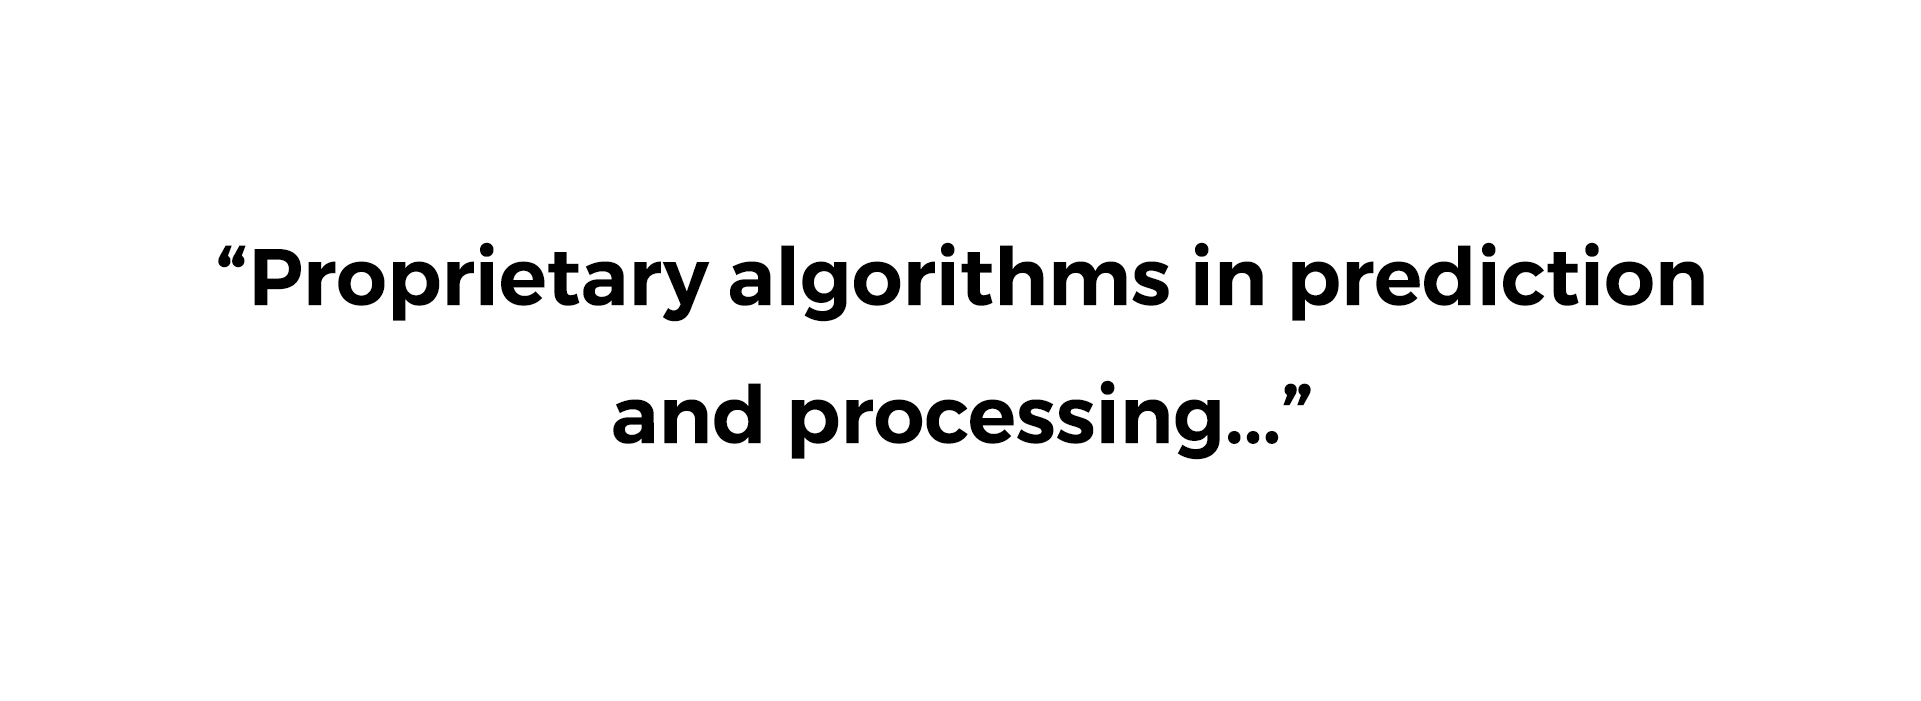 Proprietary algorithms in prediction and process-